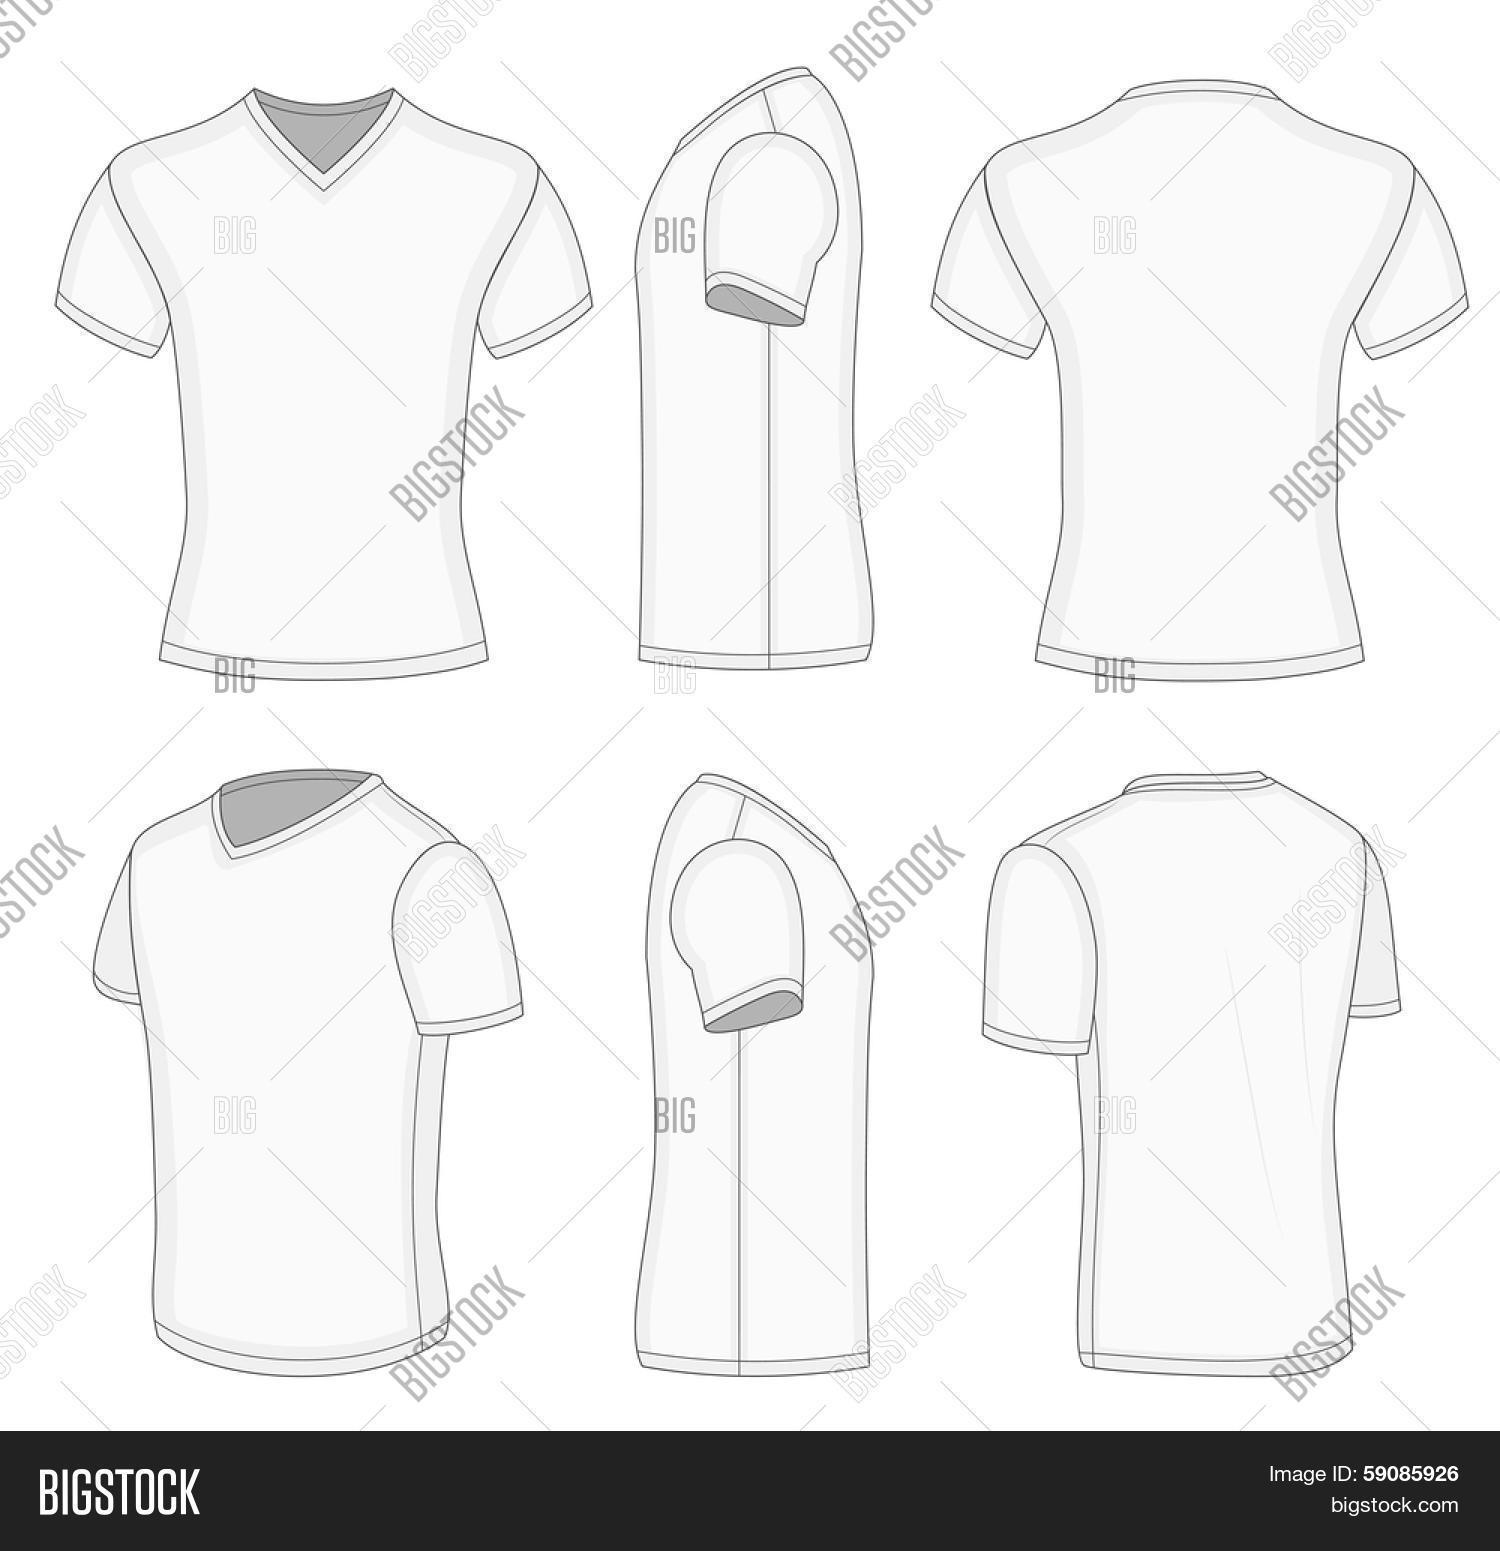 bb0089b4d689 All views men's white short sleeve t-shirt v-neck design templates (front